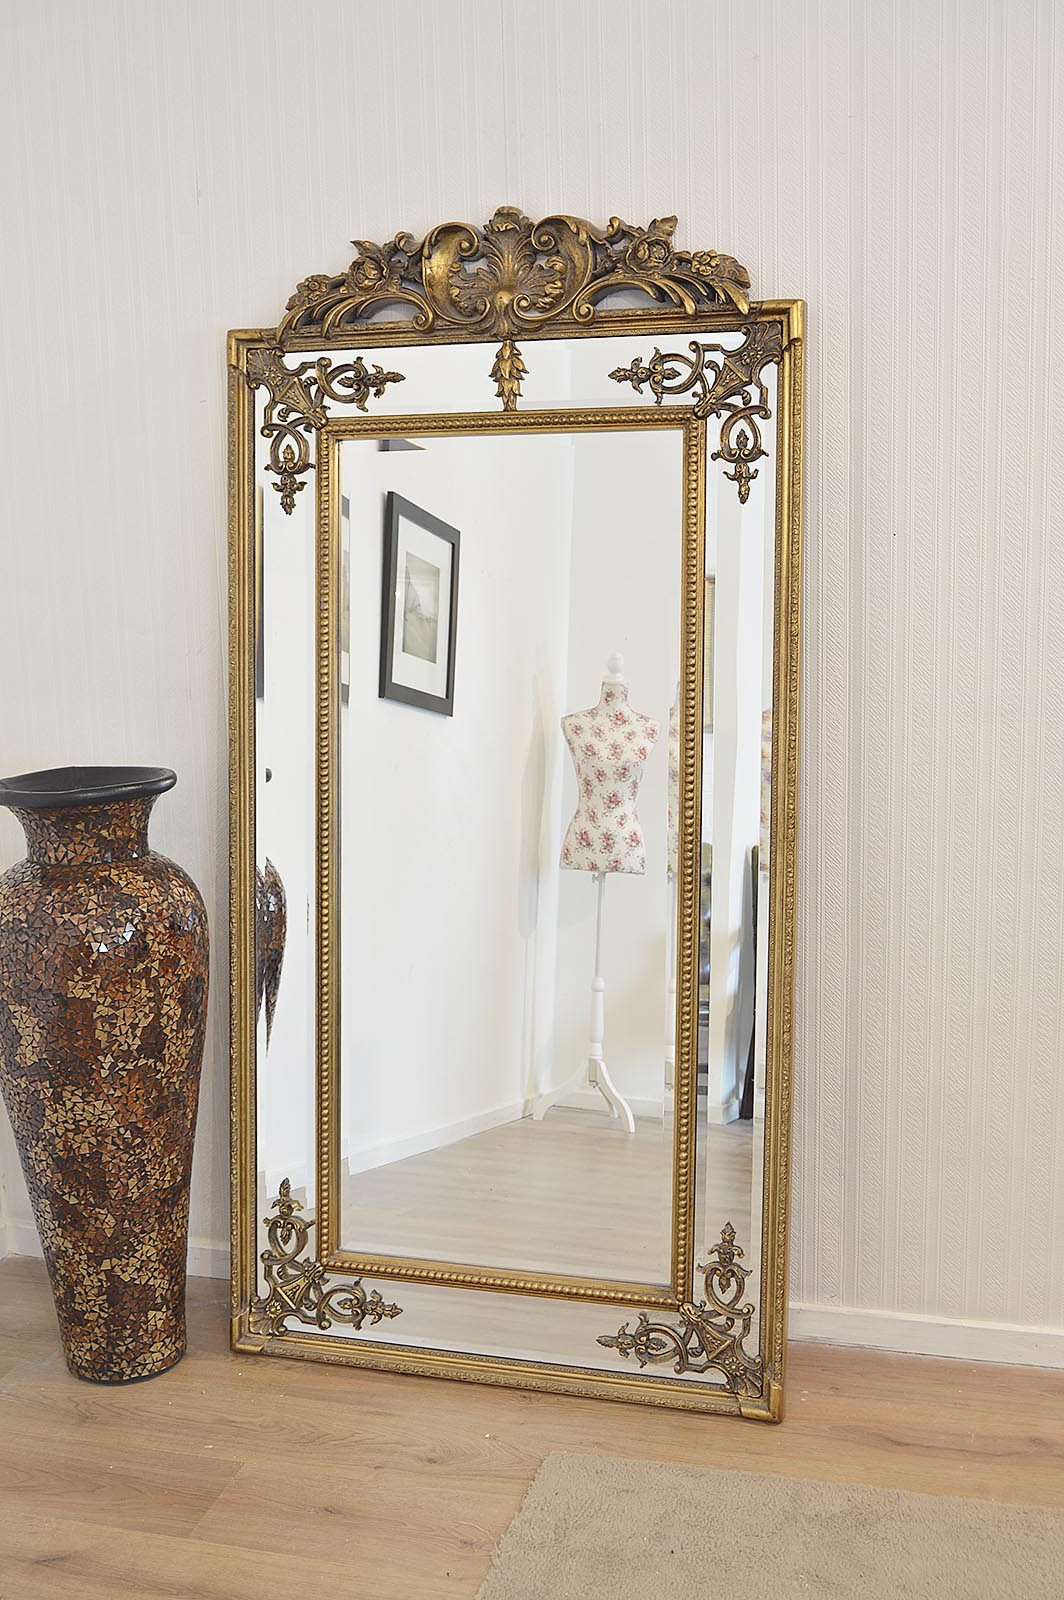 Trendy Idea Ornate Wall Mirrors Together With Inovodecor Com Throughout Preferred Ornate Wall Mirrors (View 16 of 20)